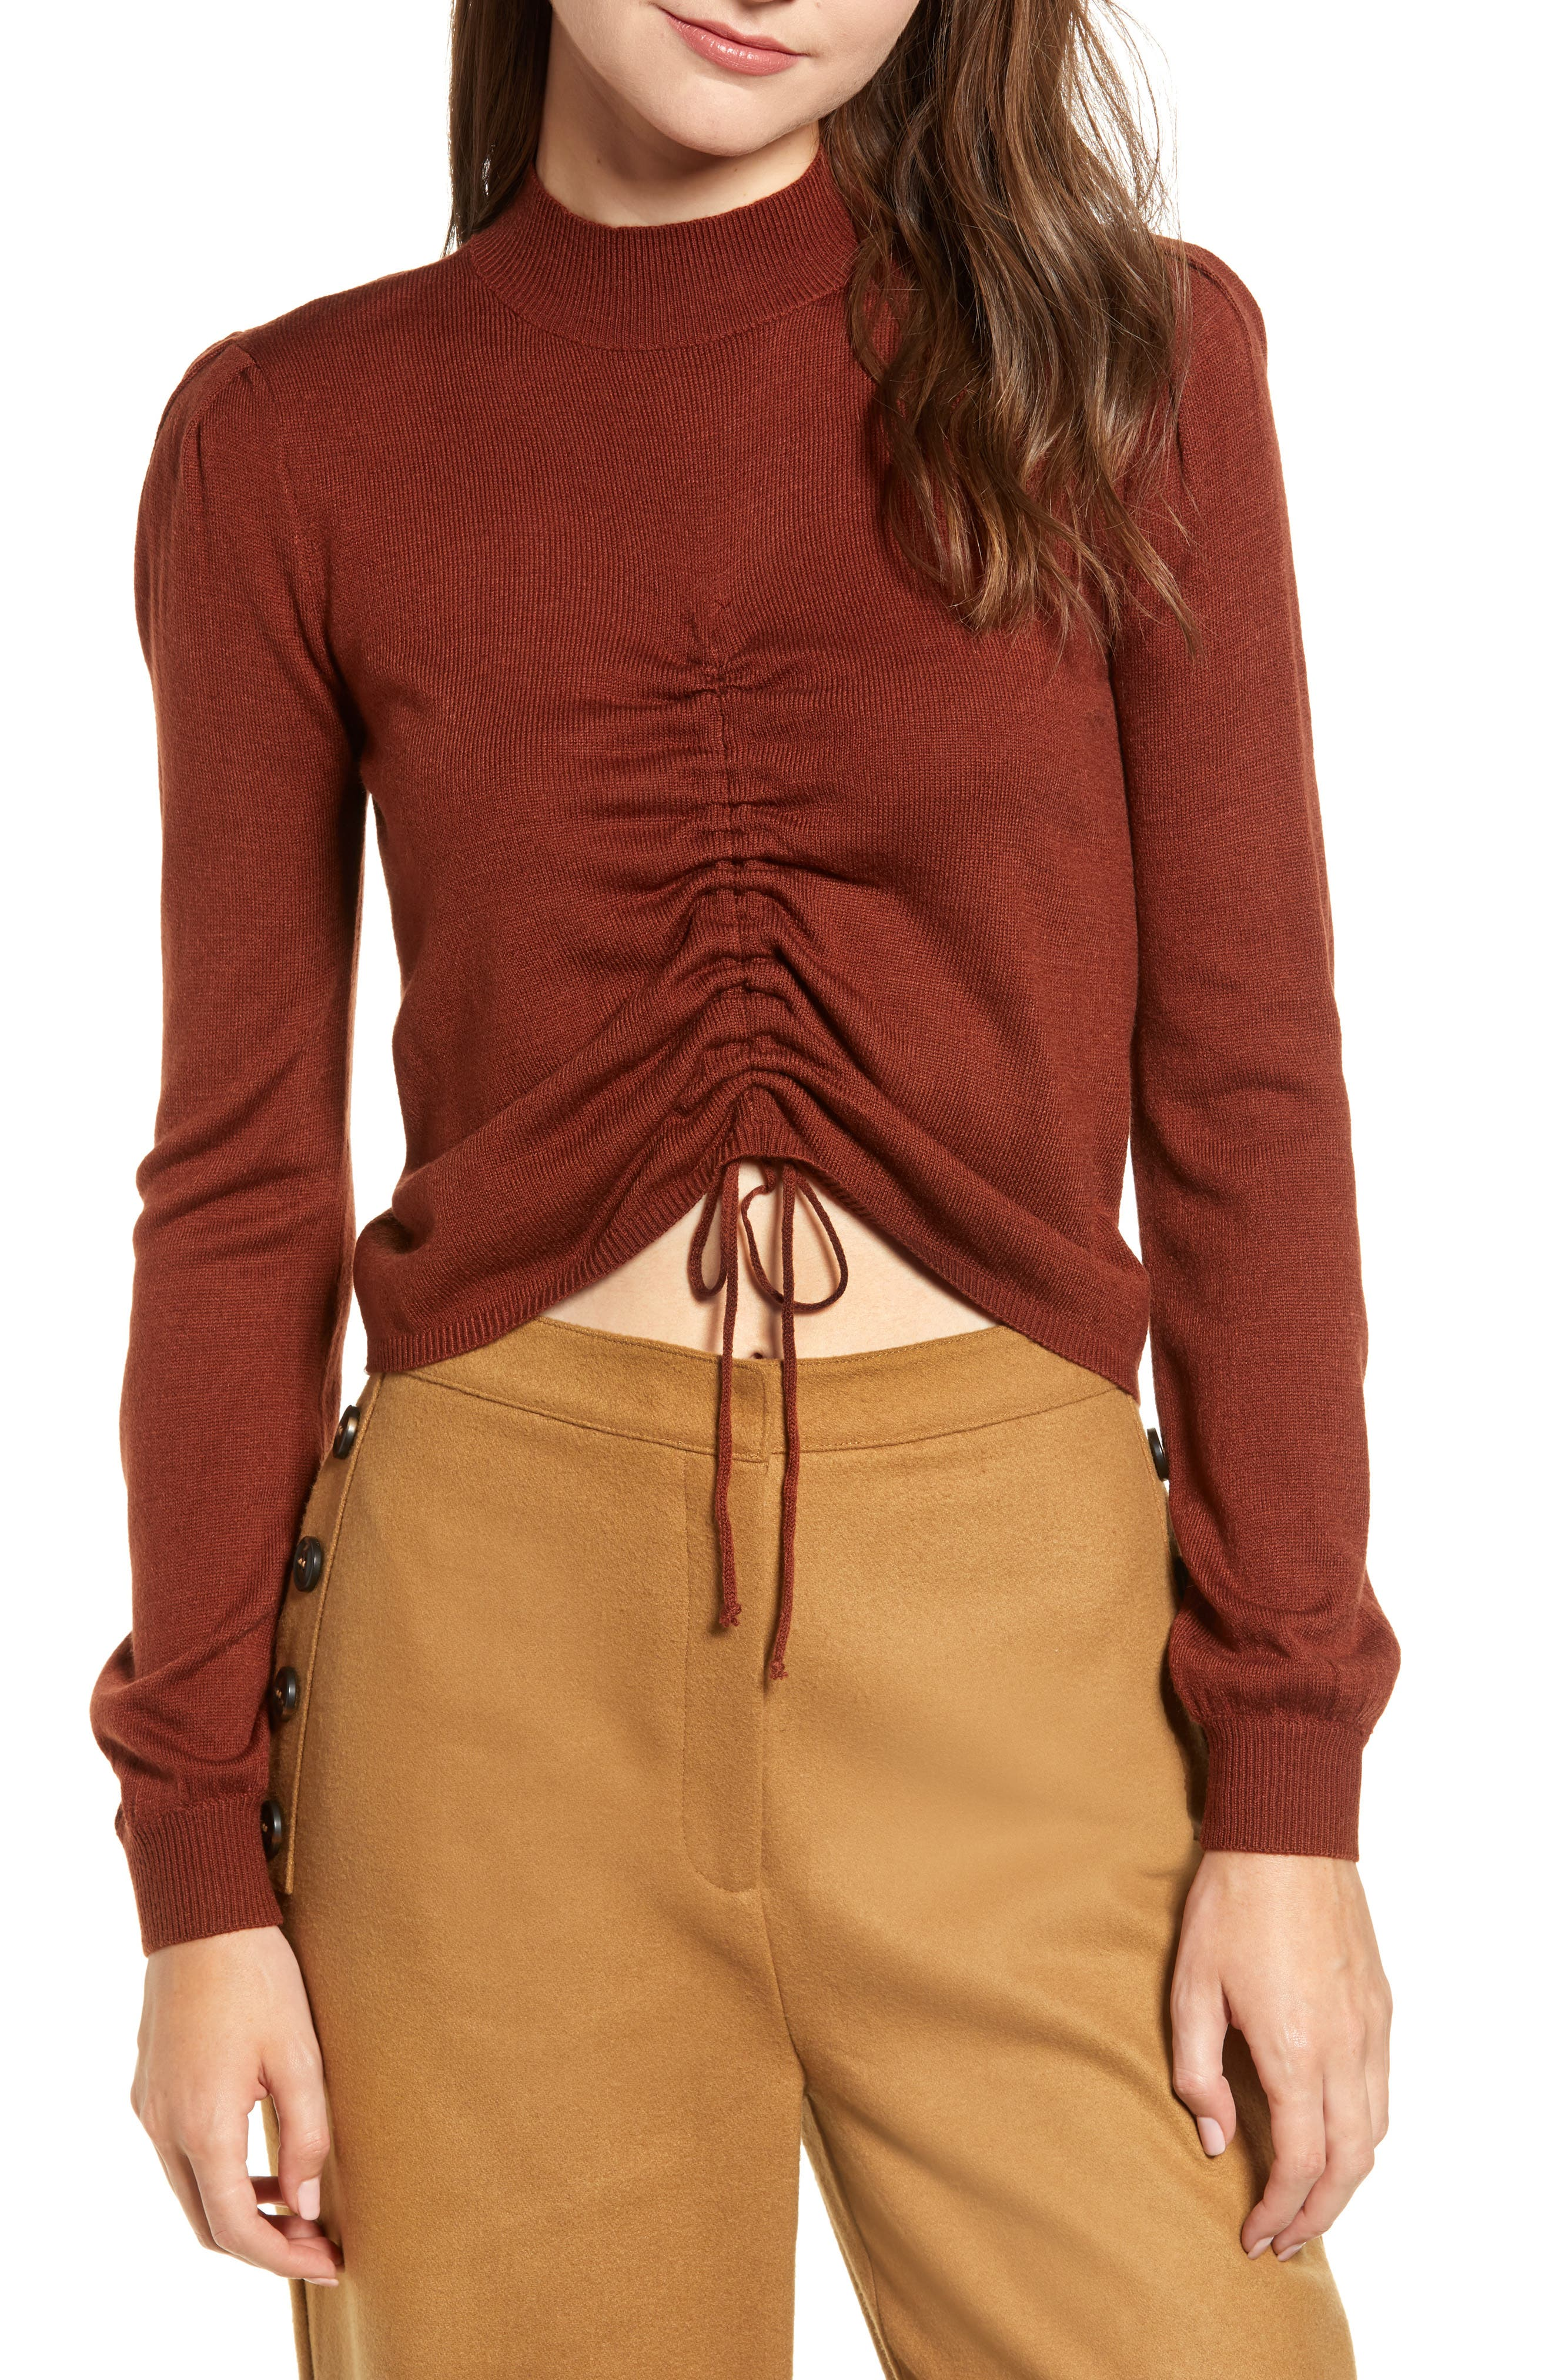 Chriselle Lim Madison Ruched Sweater,                         Main,                         color, RUST